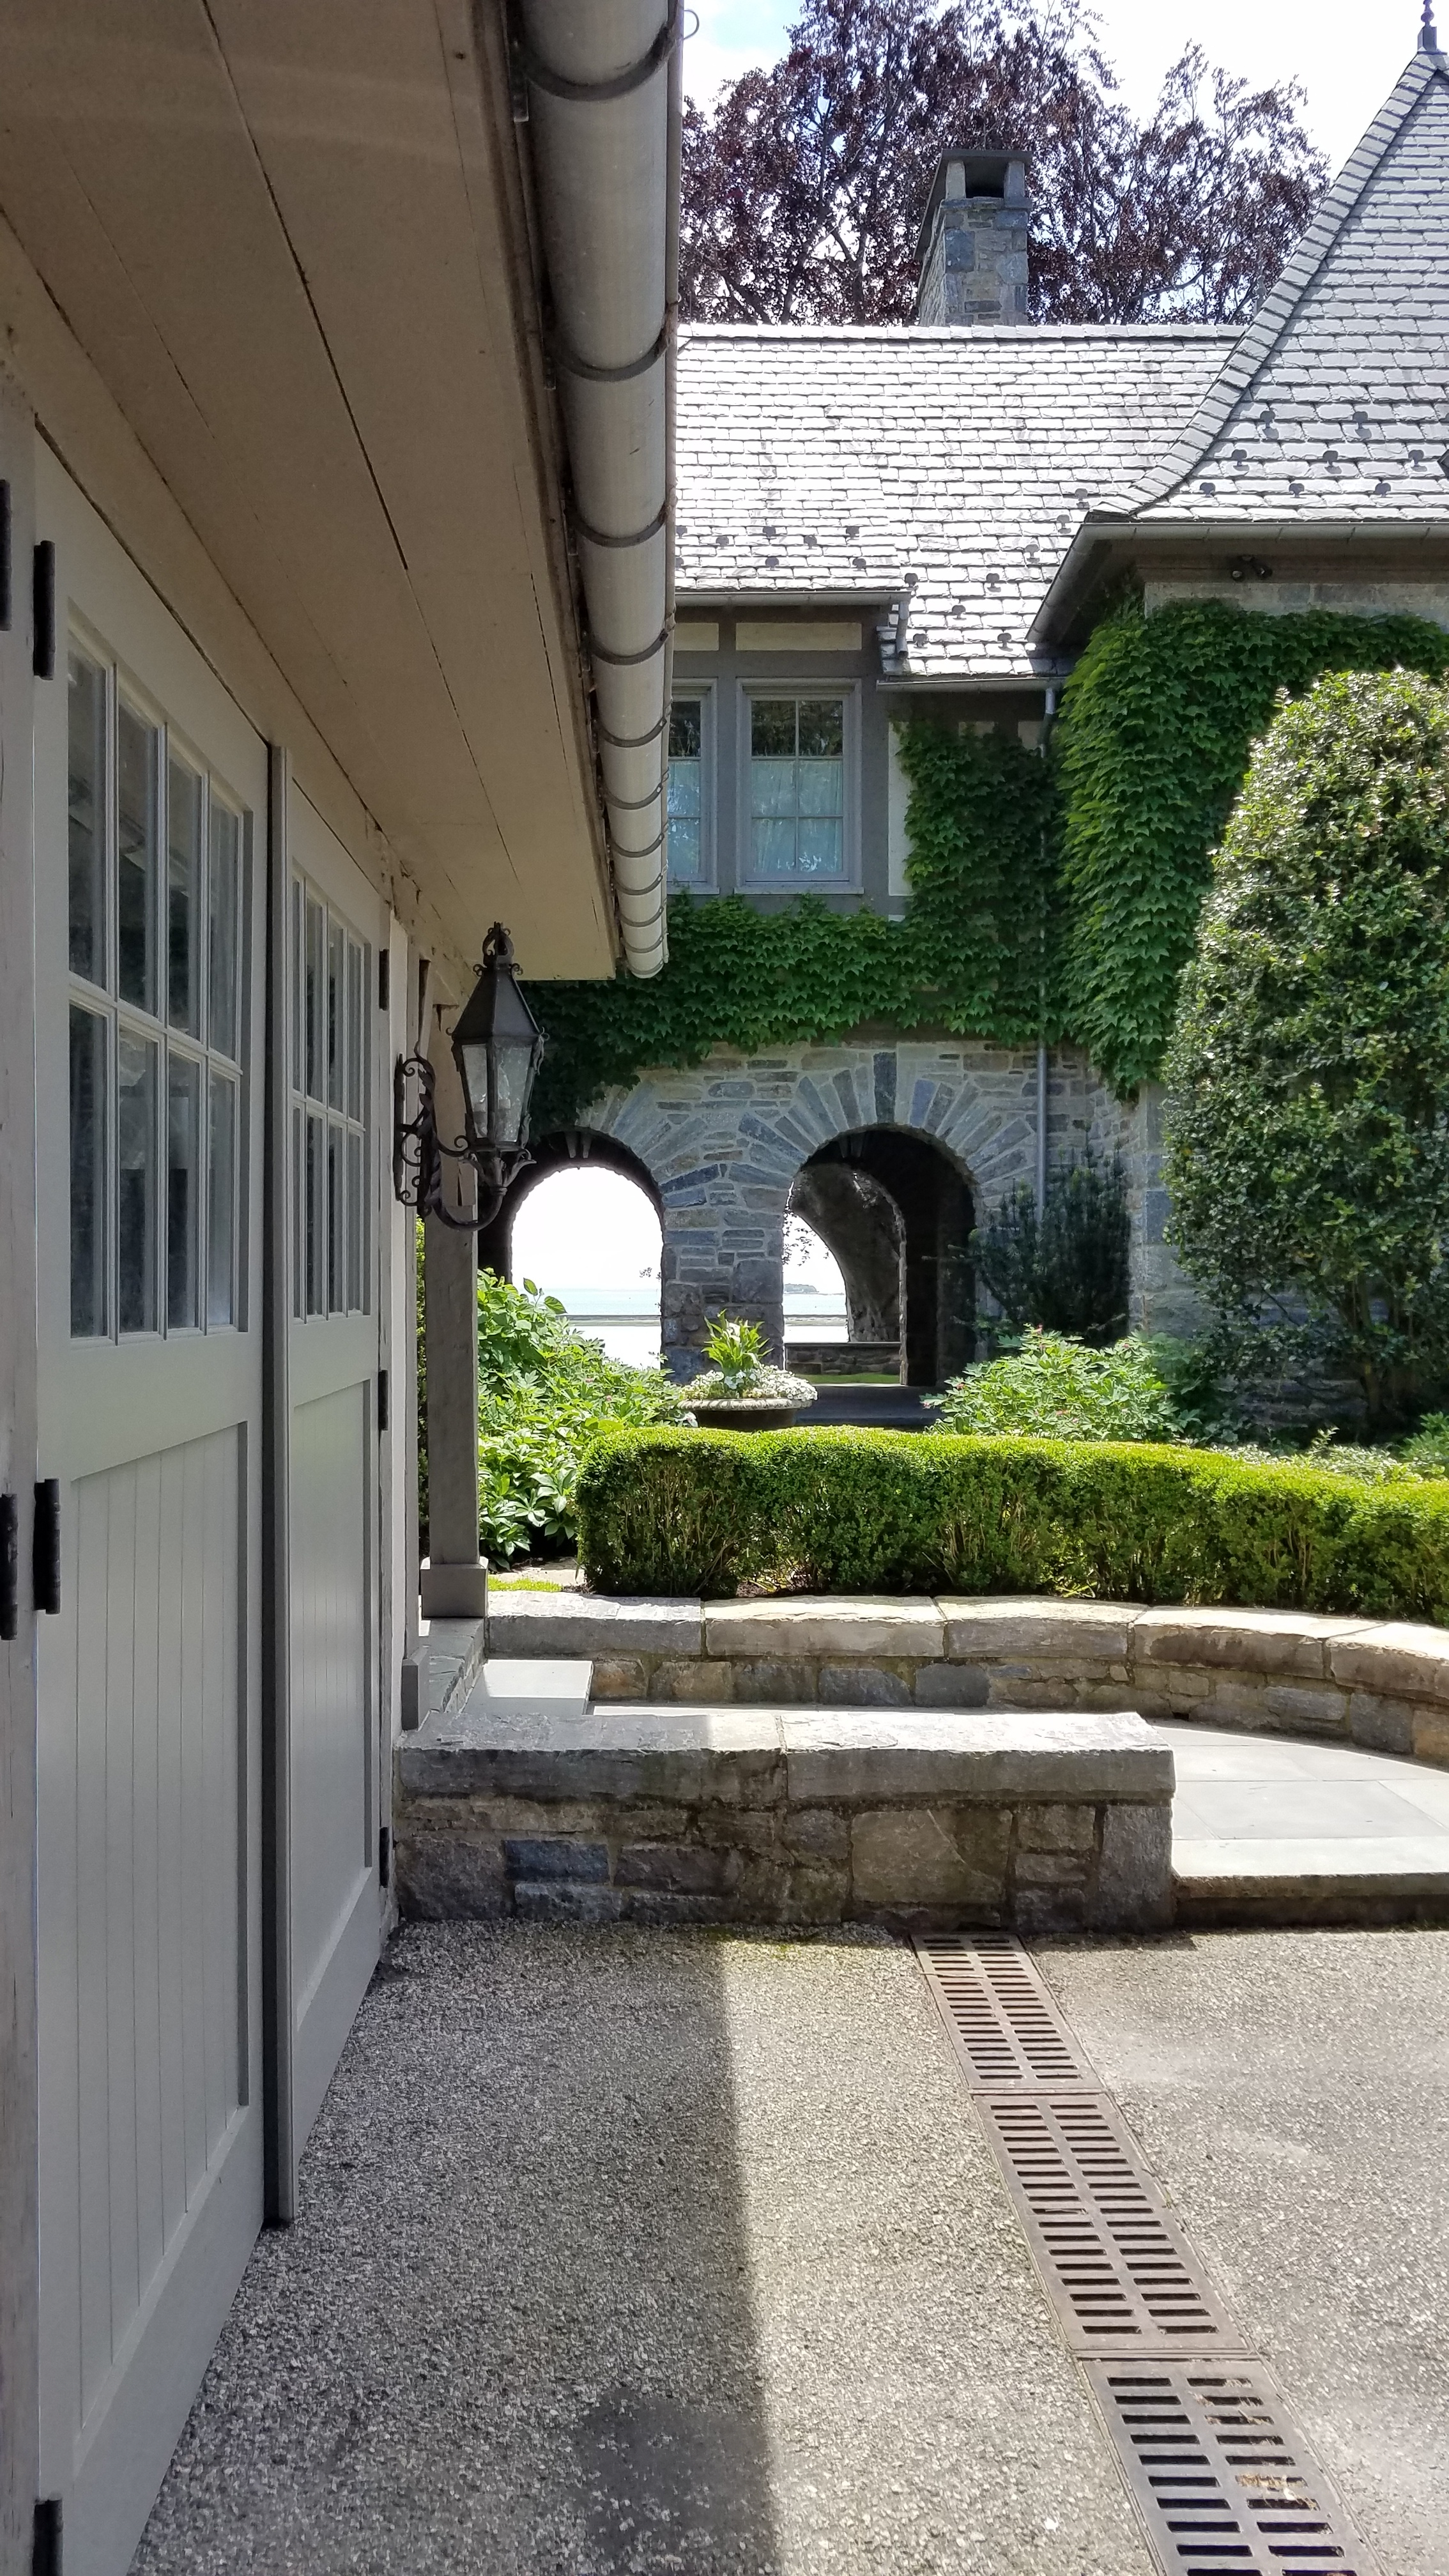 The beautiful view greets you as you arrive. That is the Long Island Sound seen through the arched breezeway.